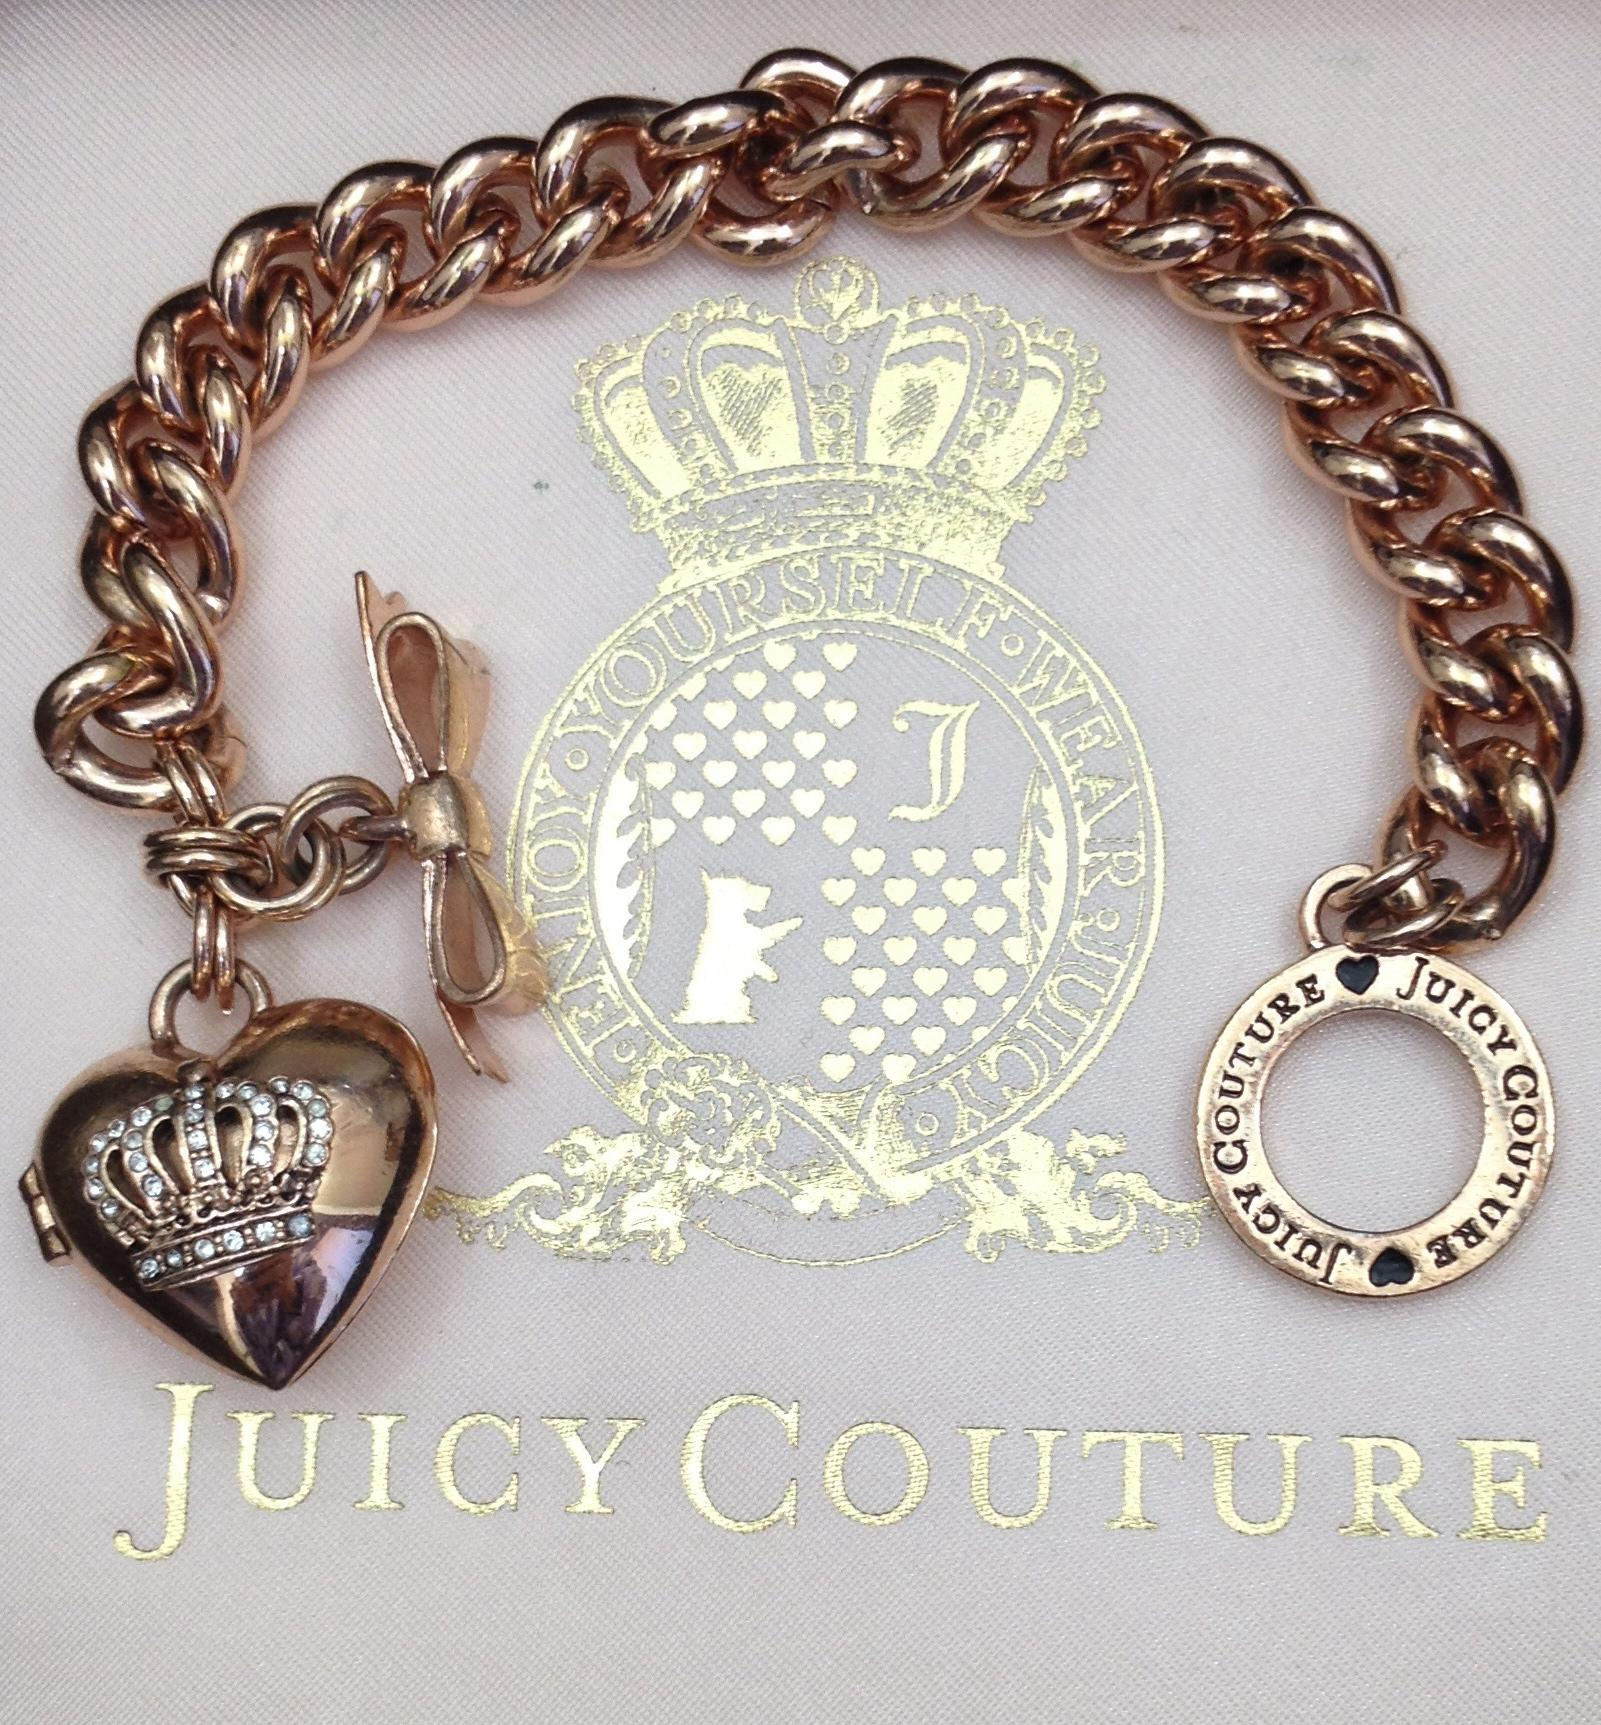 Juicy Couture Rose Gold Charm Bracelet - Tradesy